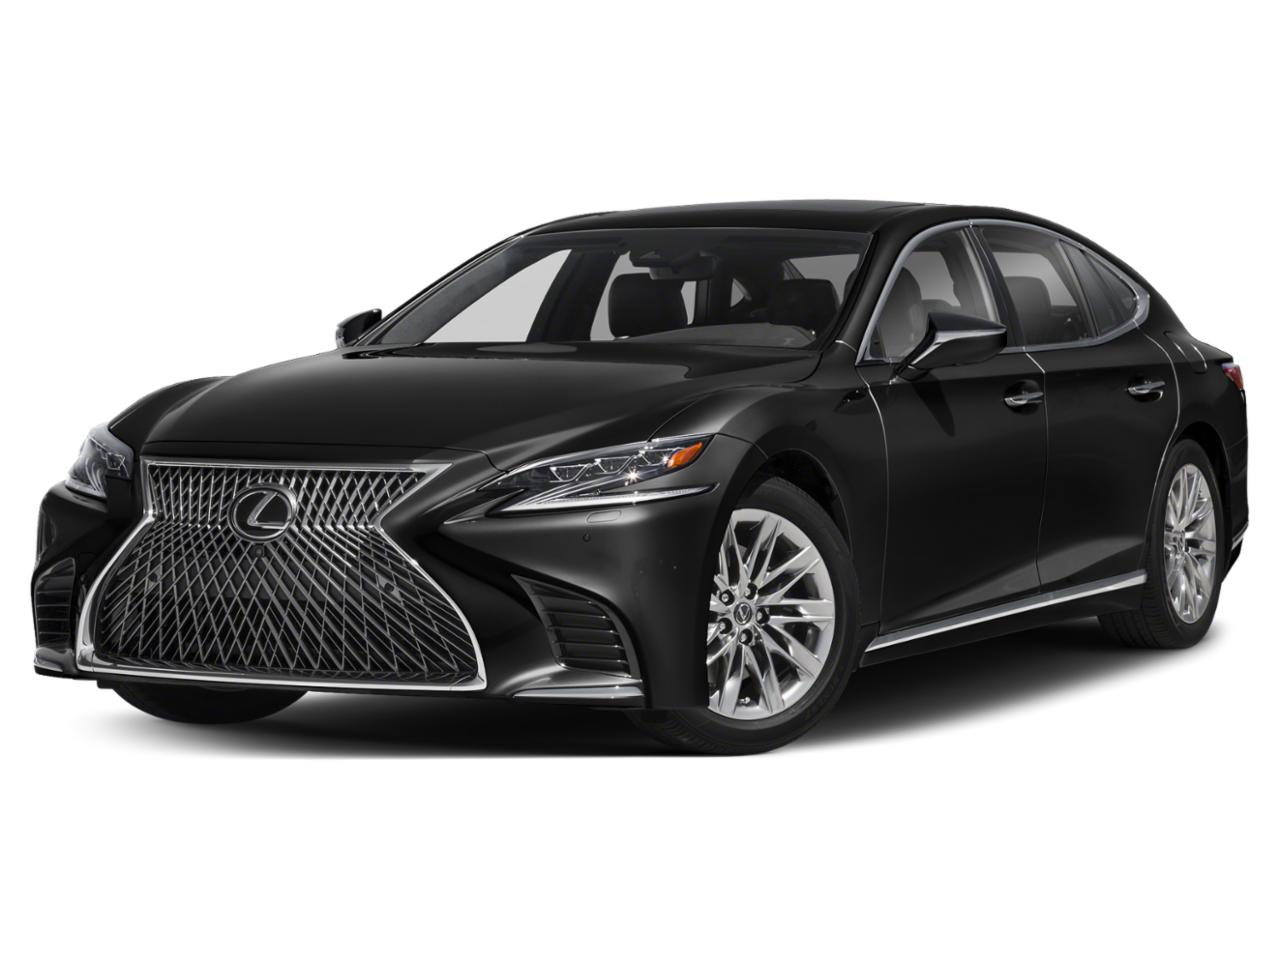 2020 Lexus LS 500 Vehicle Photo in Dallas, TX 75235